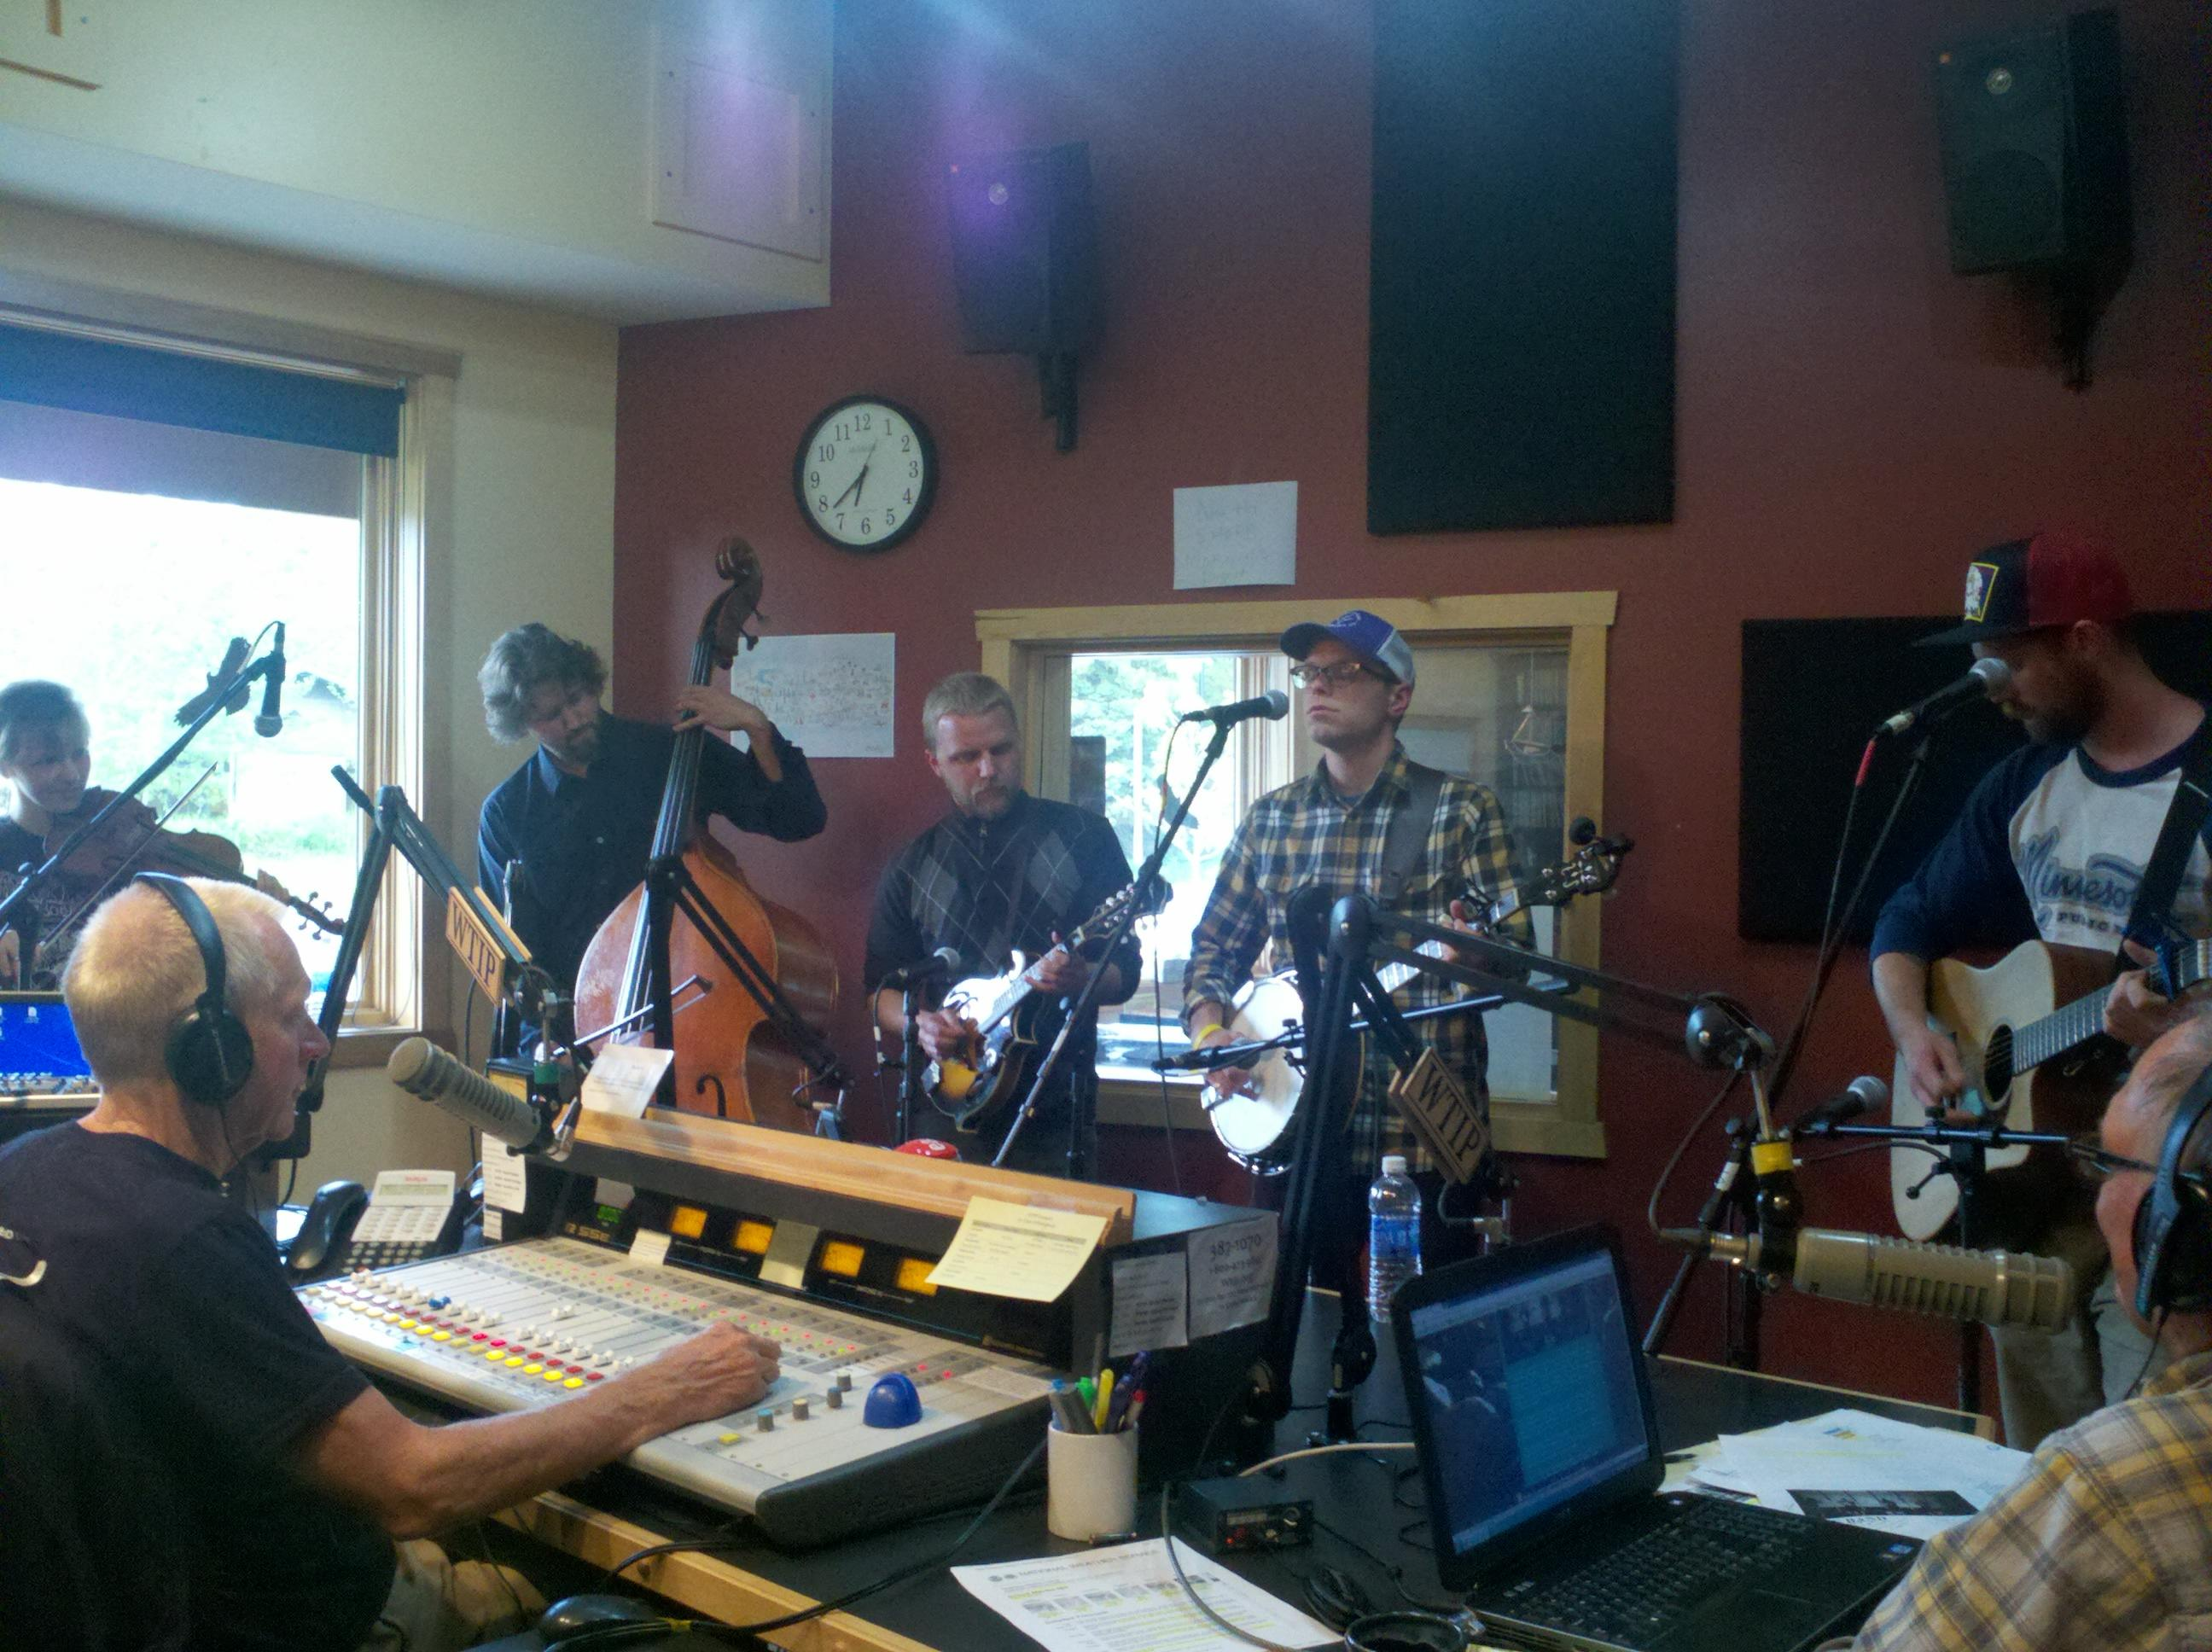 Duluth bluegrass band Tin Can Gin makes their Roadhouse debut